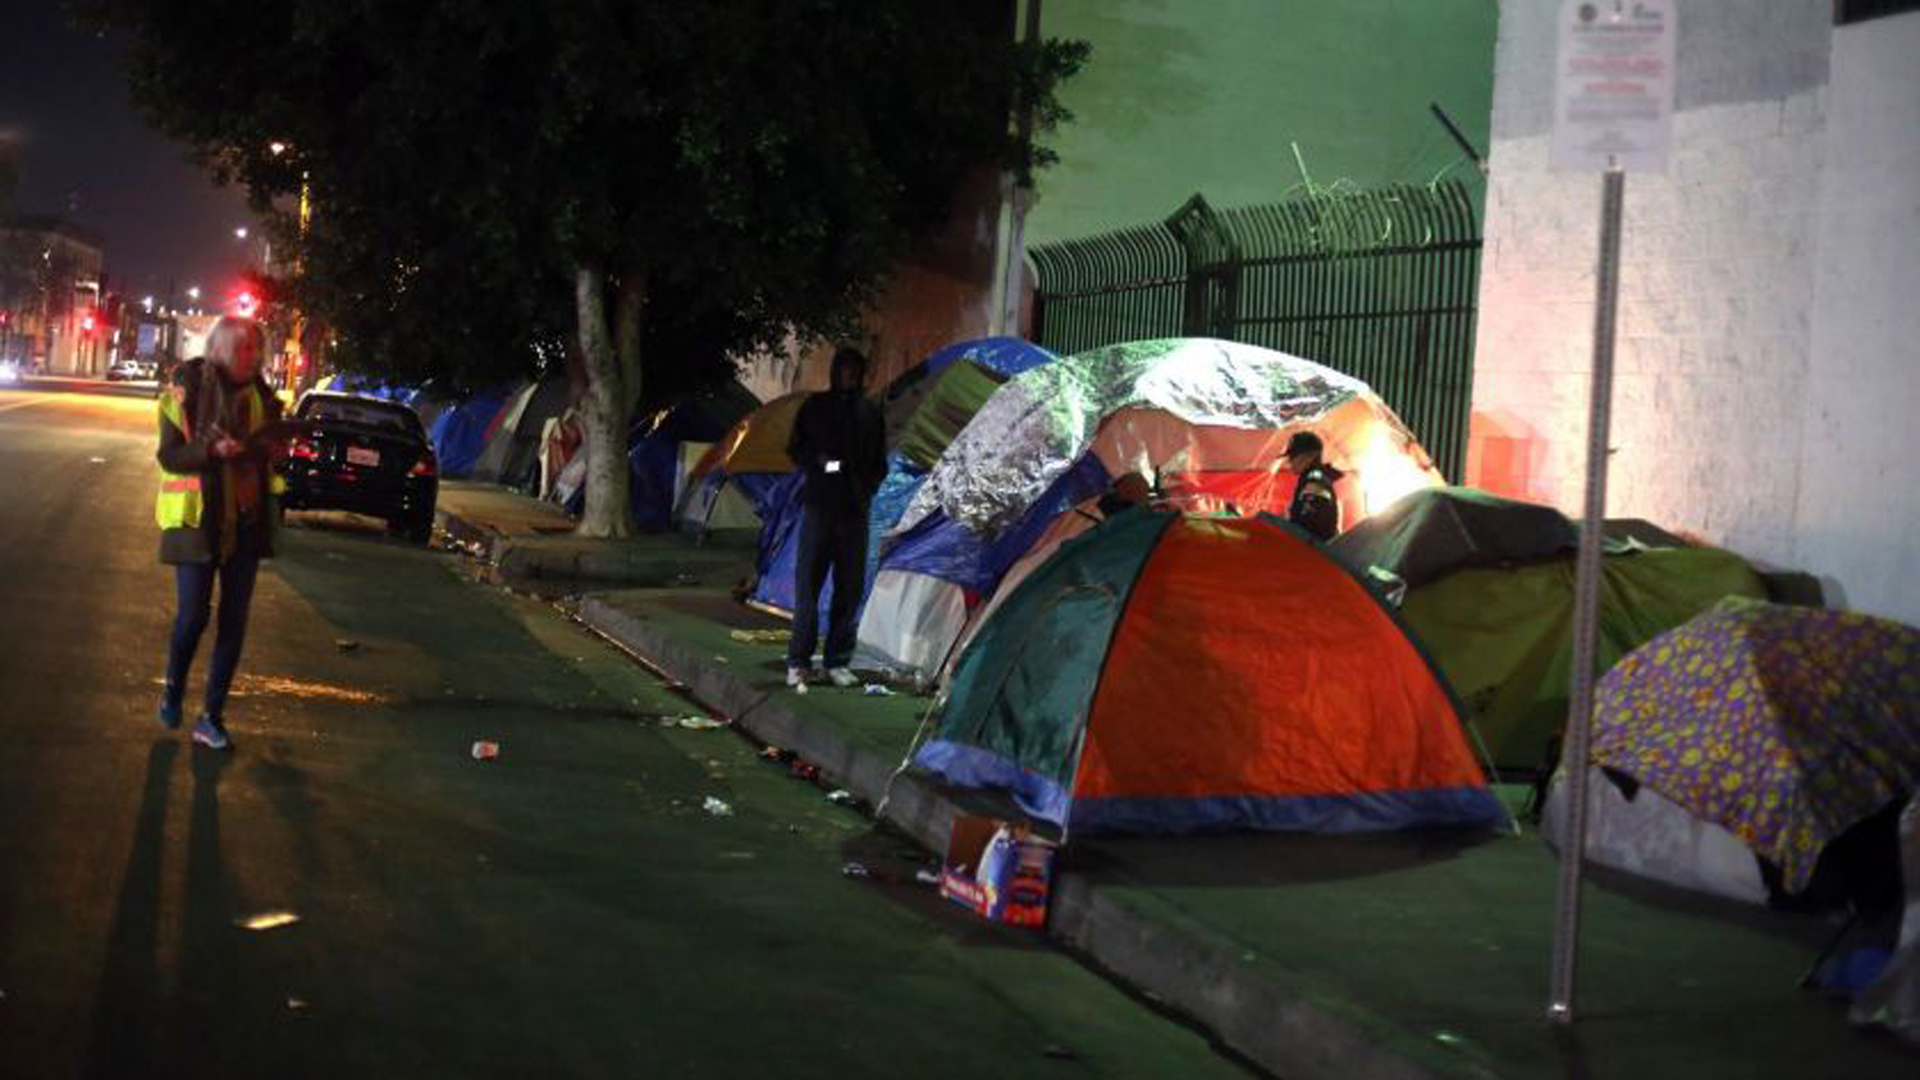 Volunteer Barbara Petersmeyer, left, looks at tents during this year's point-in-time count, run by the Los Angeles Homeless Services Authority.(Credit: Dania Maxwell / Los Angeles Times)